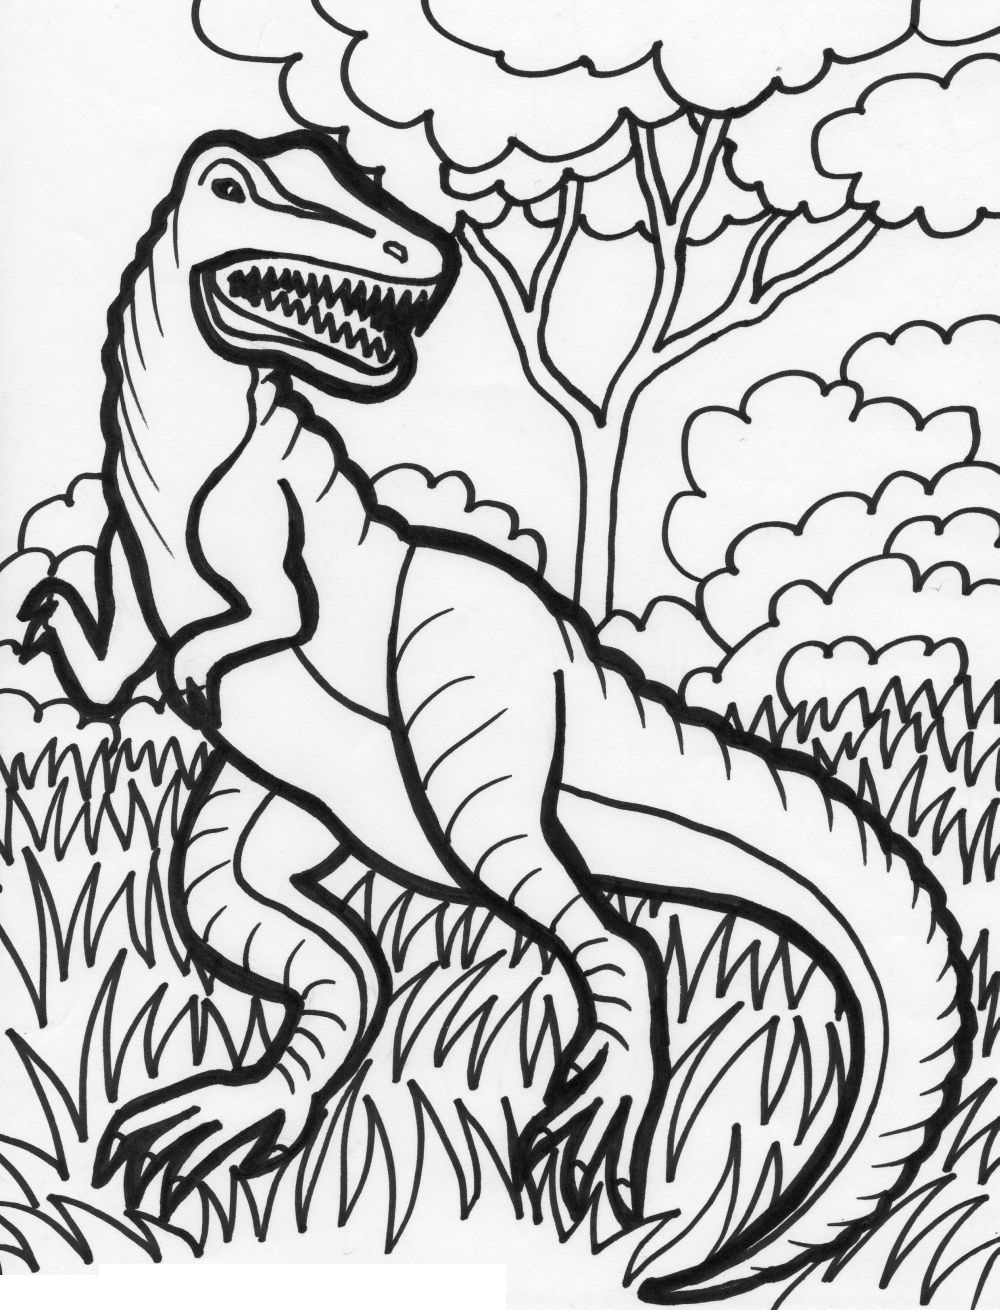 coloring dinosaur free printables colormecrazyorg dinosaur train coloring pages dinosaur printables coloring free